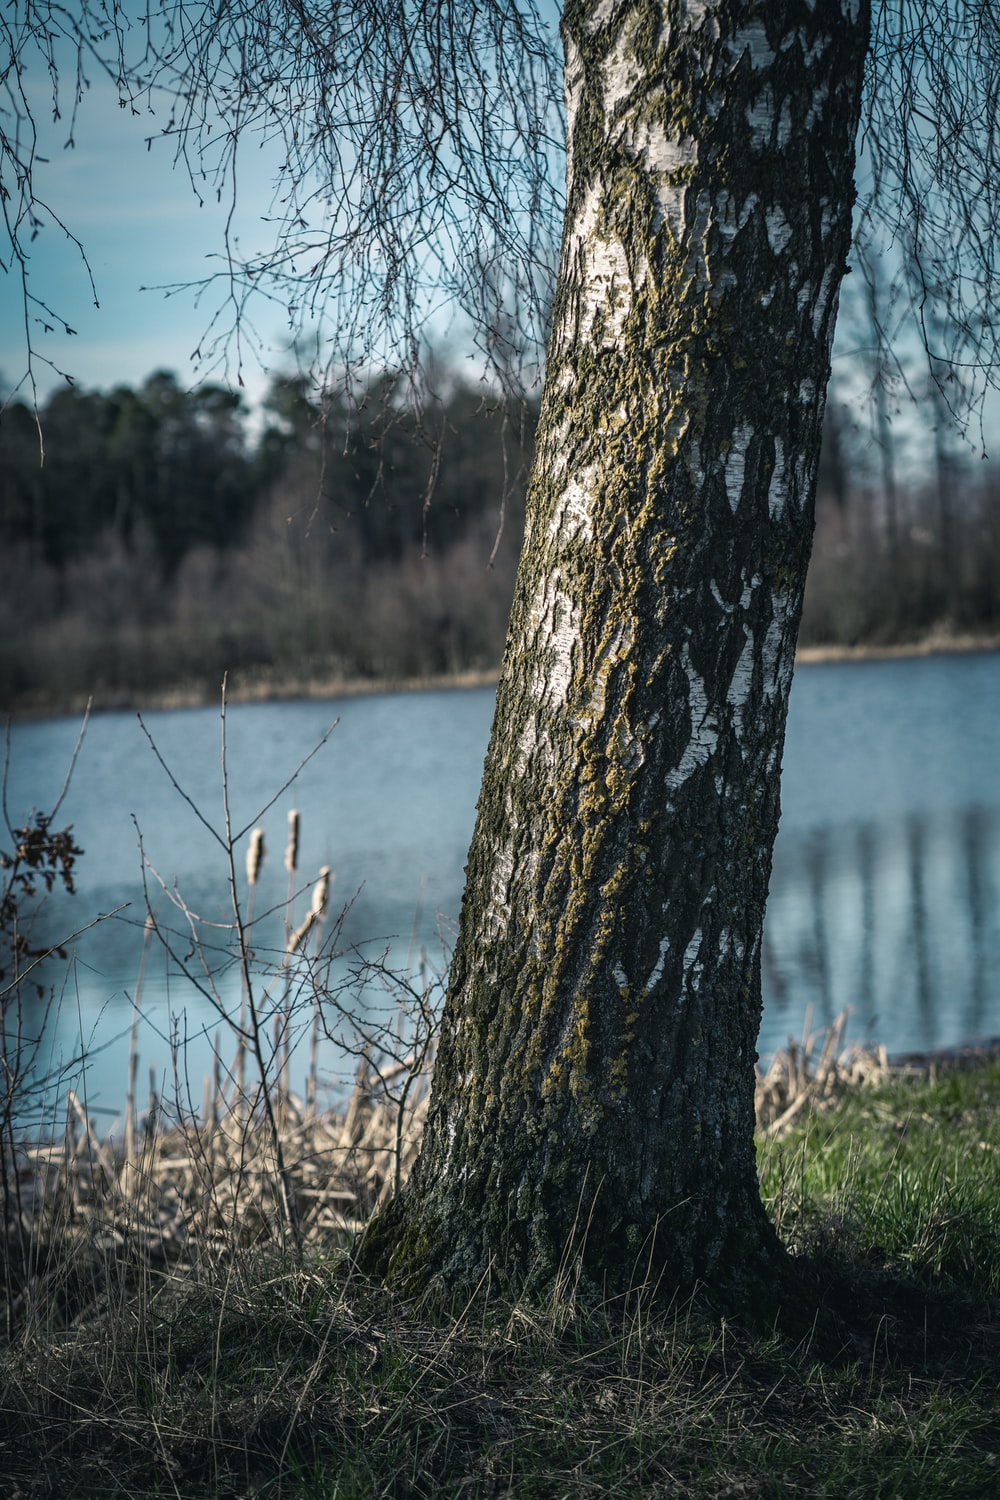 brown tree trunk near body of water during daytime